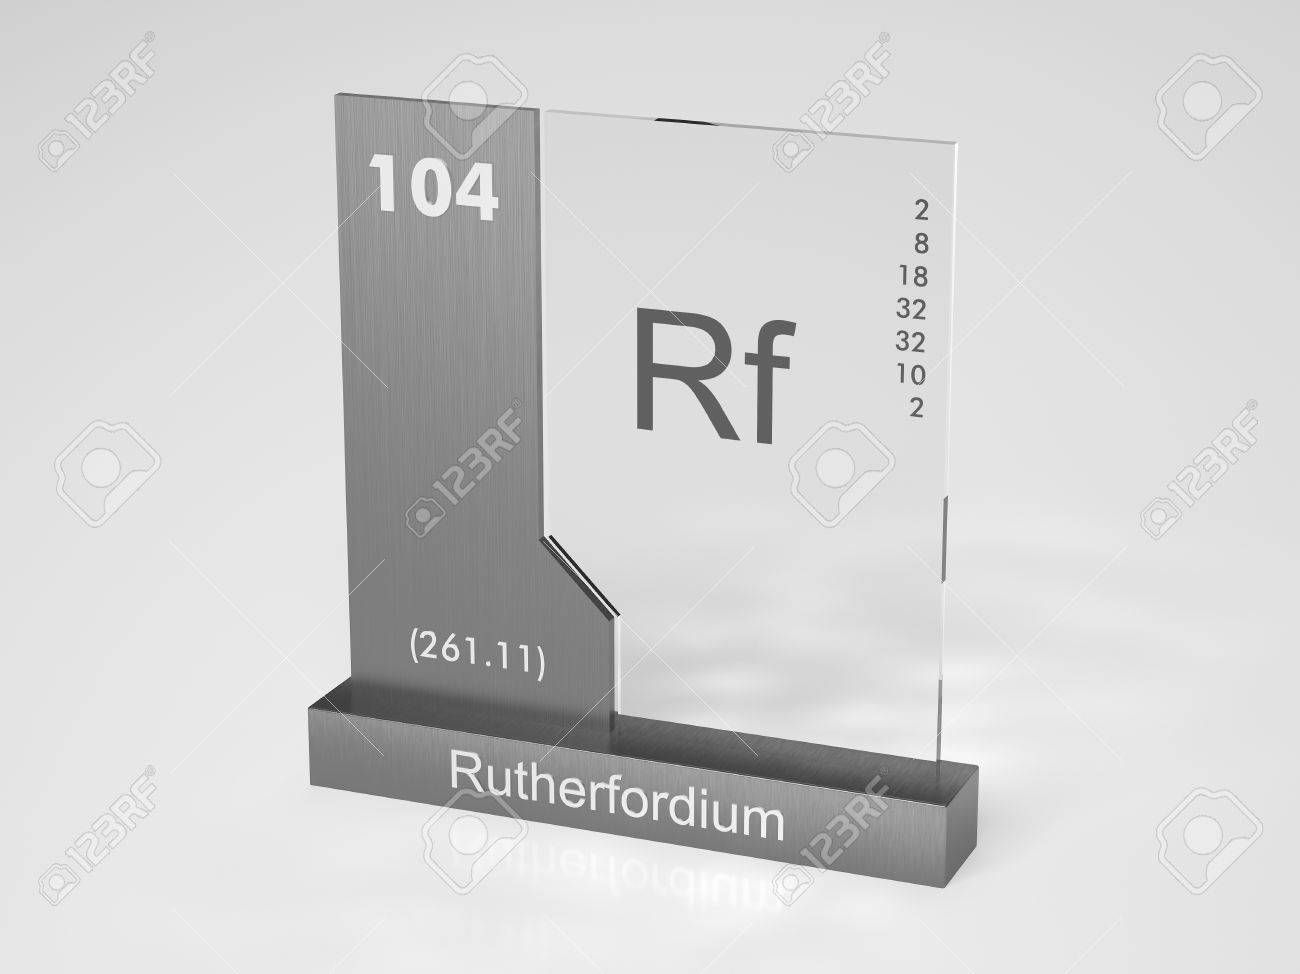 Rutherfordium periodic table gallery periodic table images rutherfordium symbol rf chemical element of the periodic rutherfordium symbol rf chemical element of the periodic gamestrikefo Image collections